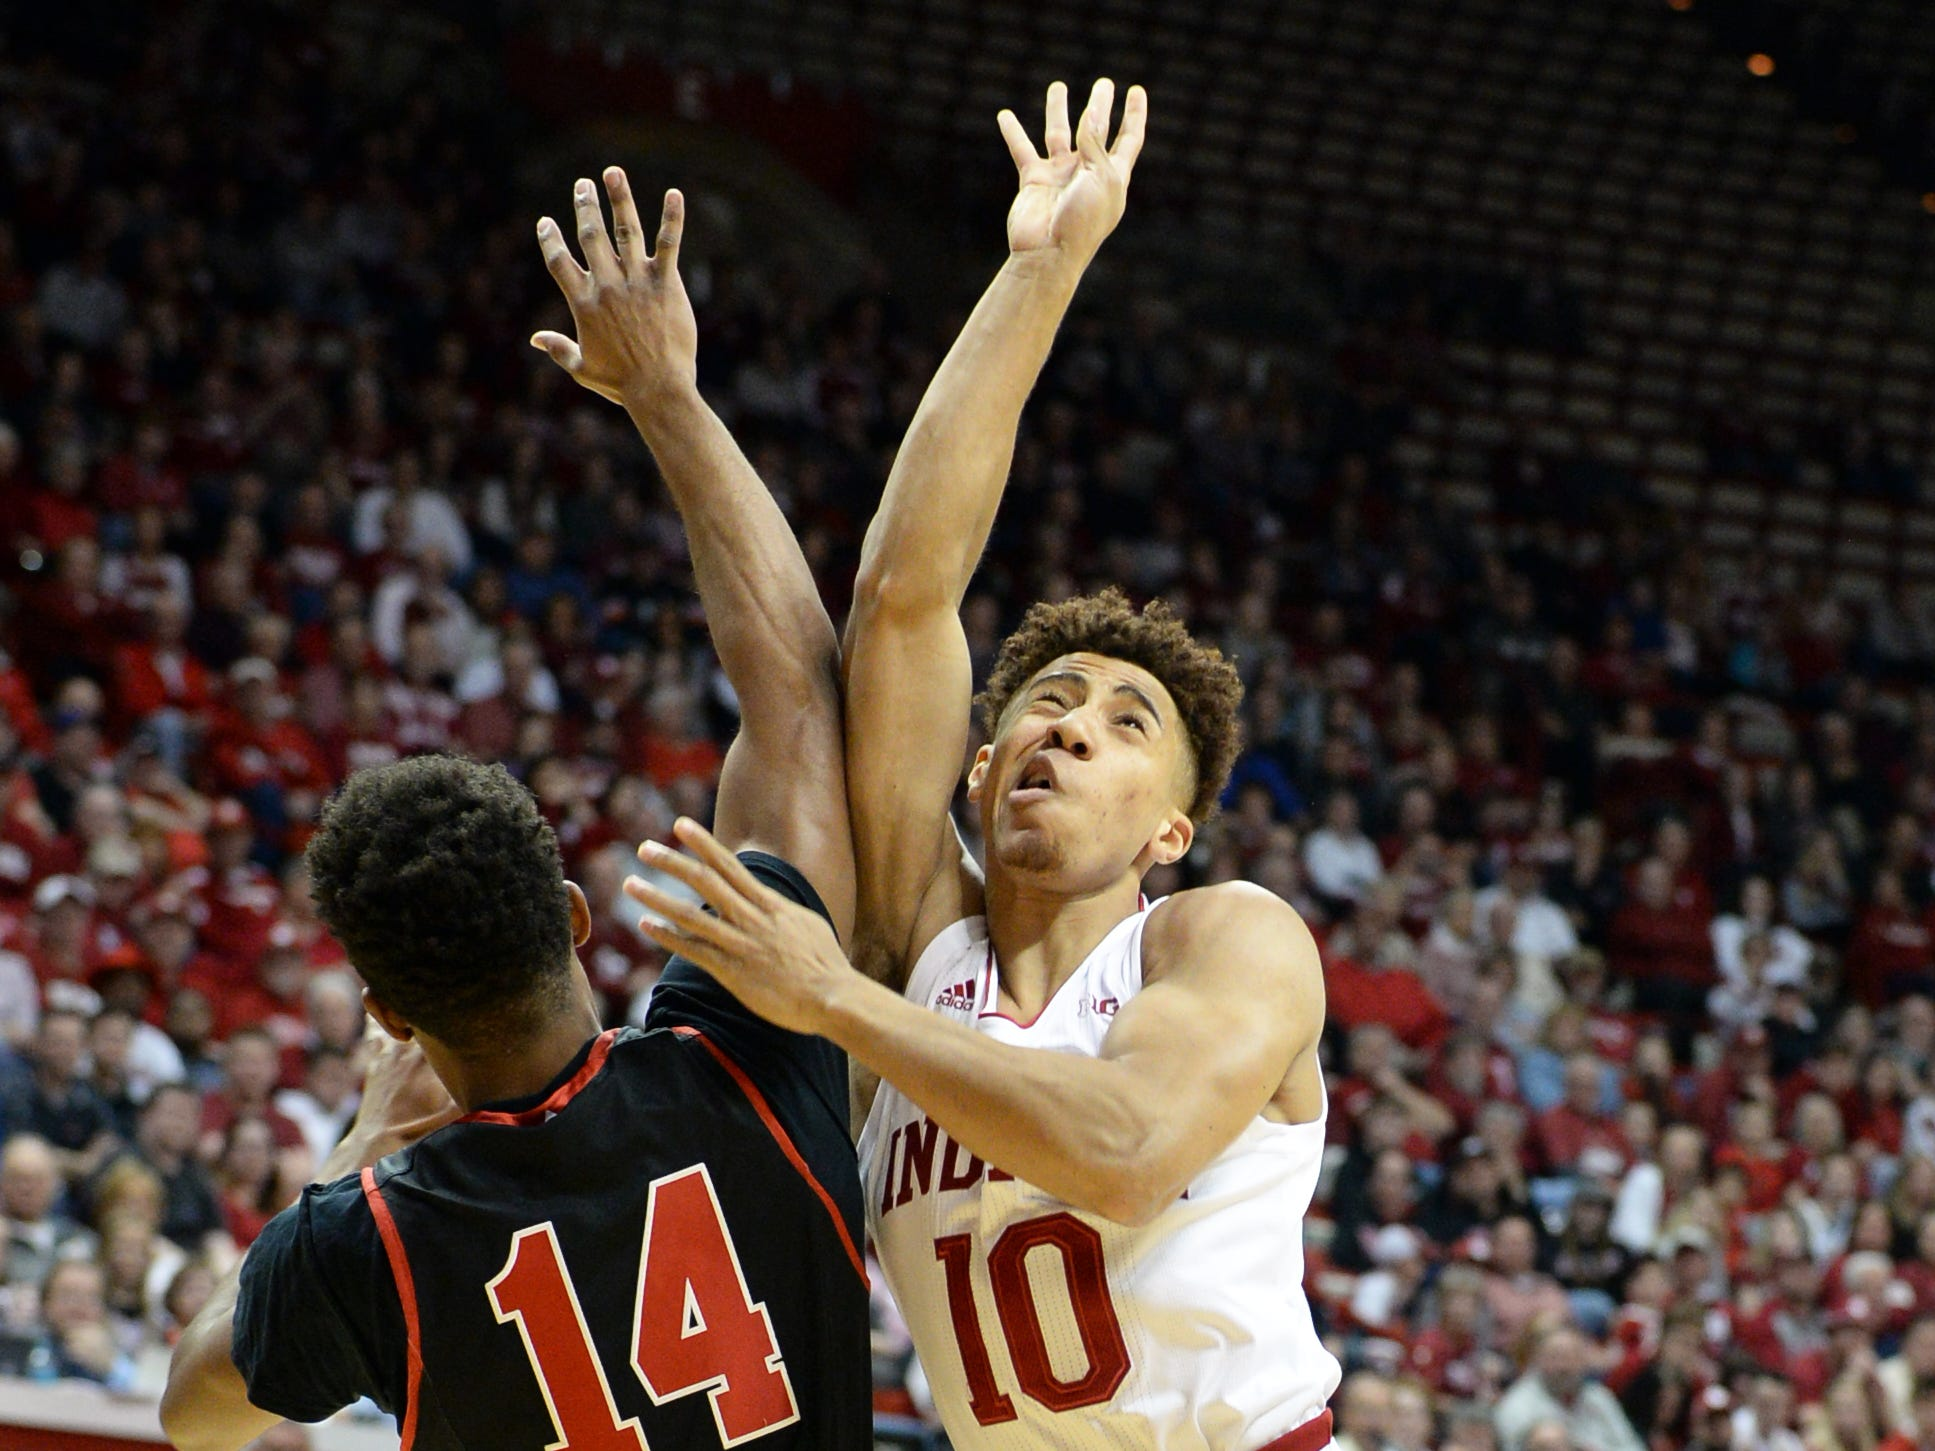 Indiana Hoosiers guard Rob Phinisee (10) attempts a shot during the game against St. Francis (Pa.) at Simon Skjodt Assembly Hall in Bloomington Ind., on Tuesday, March 19, 2019.